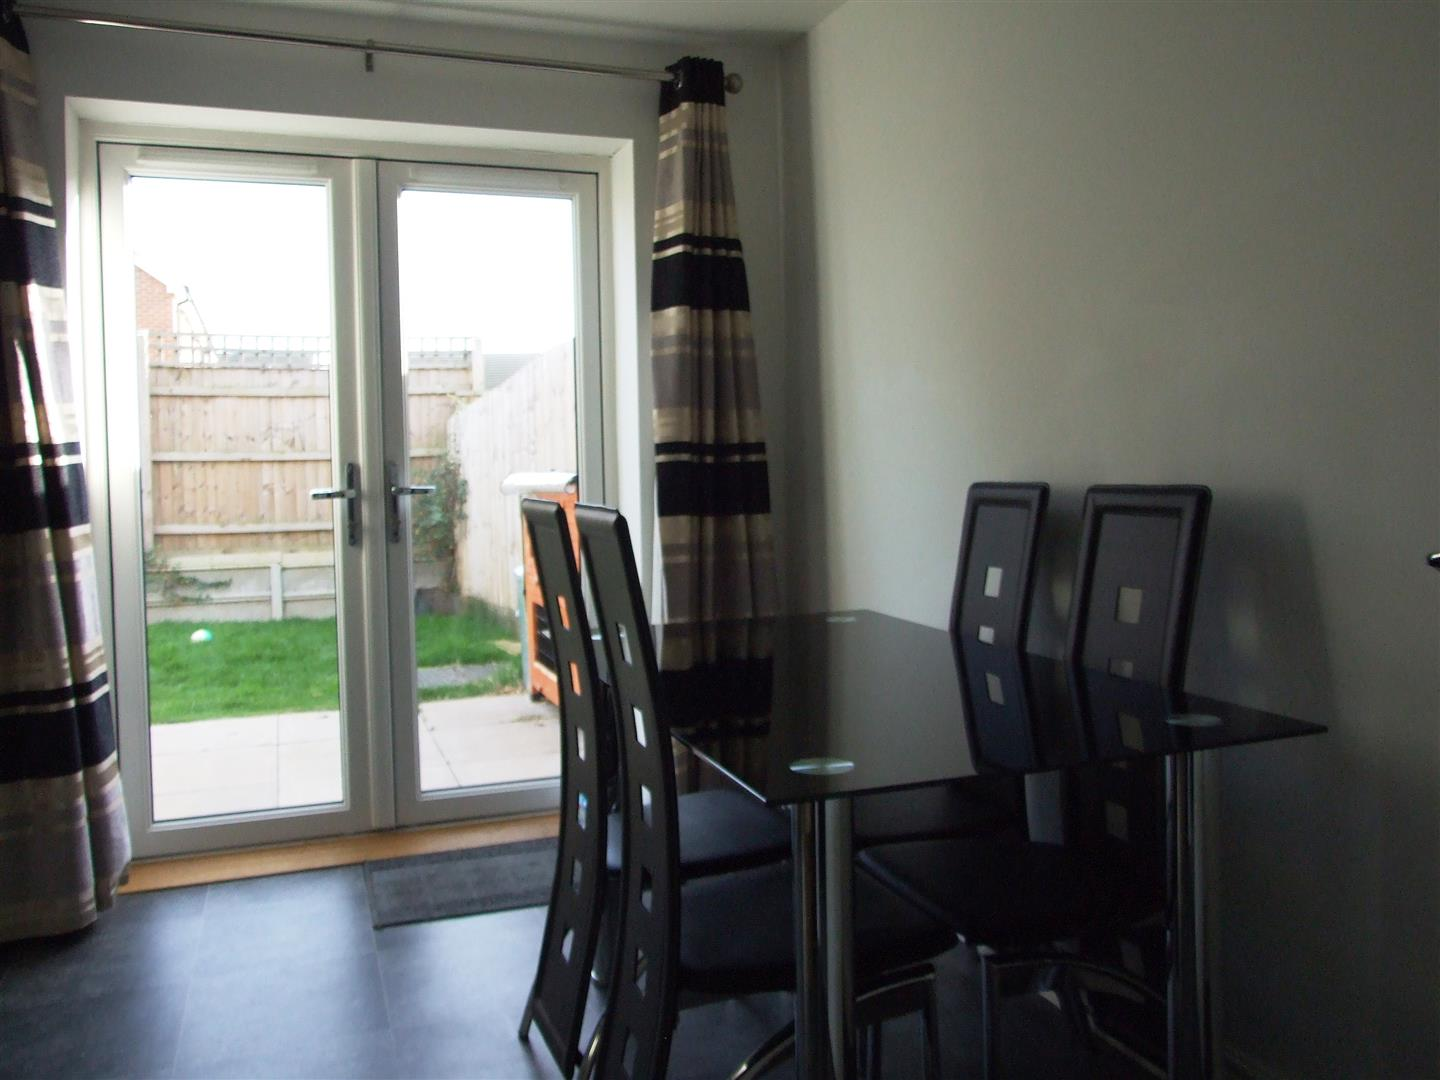 3 bed house to rent in Long Sutton, PE12 9GZ  - Property Image 6